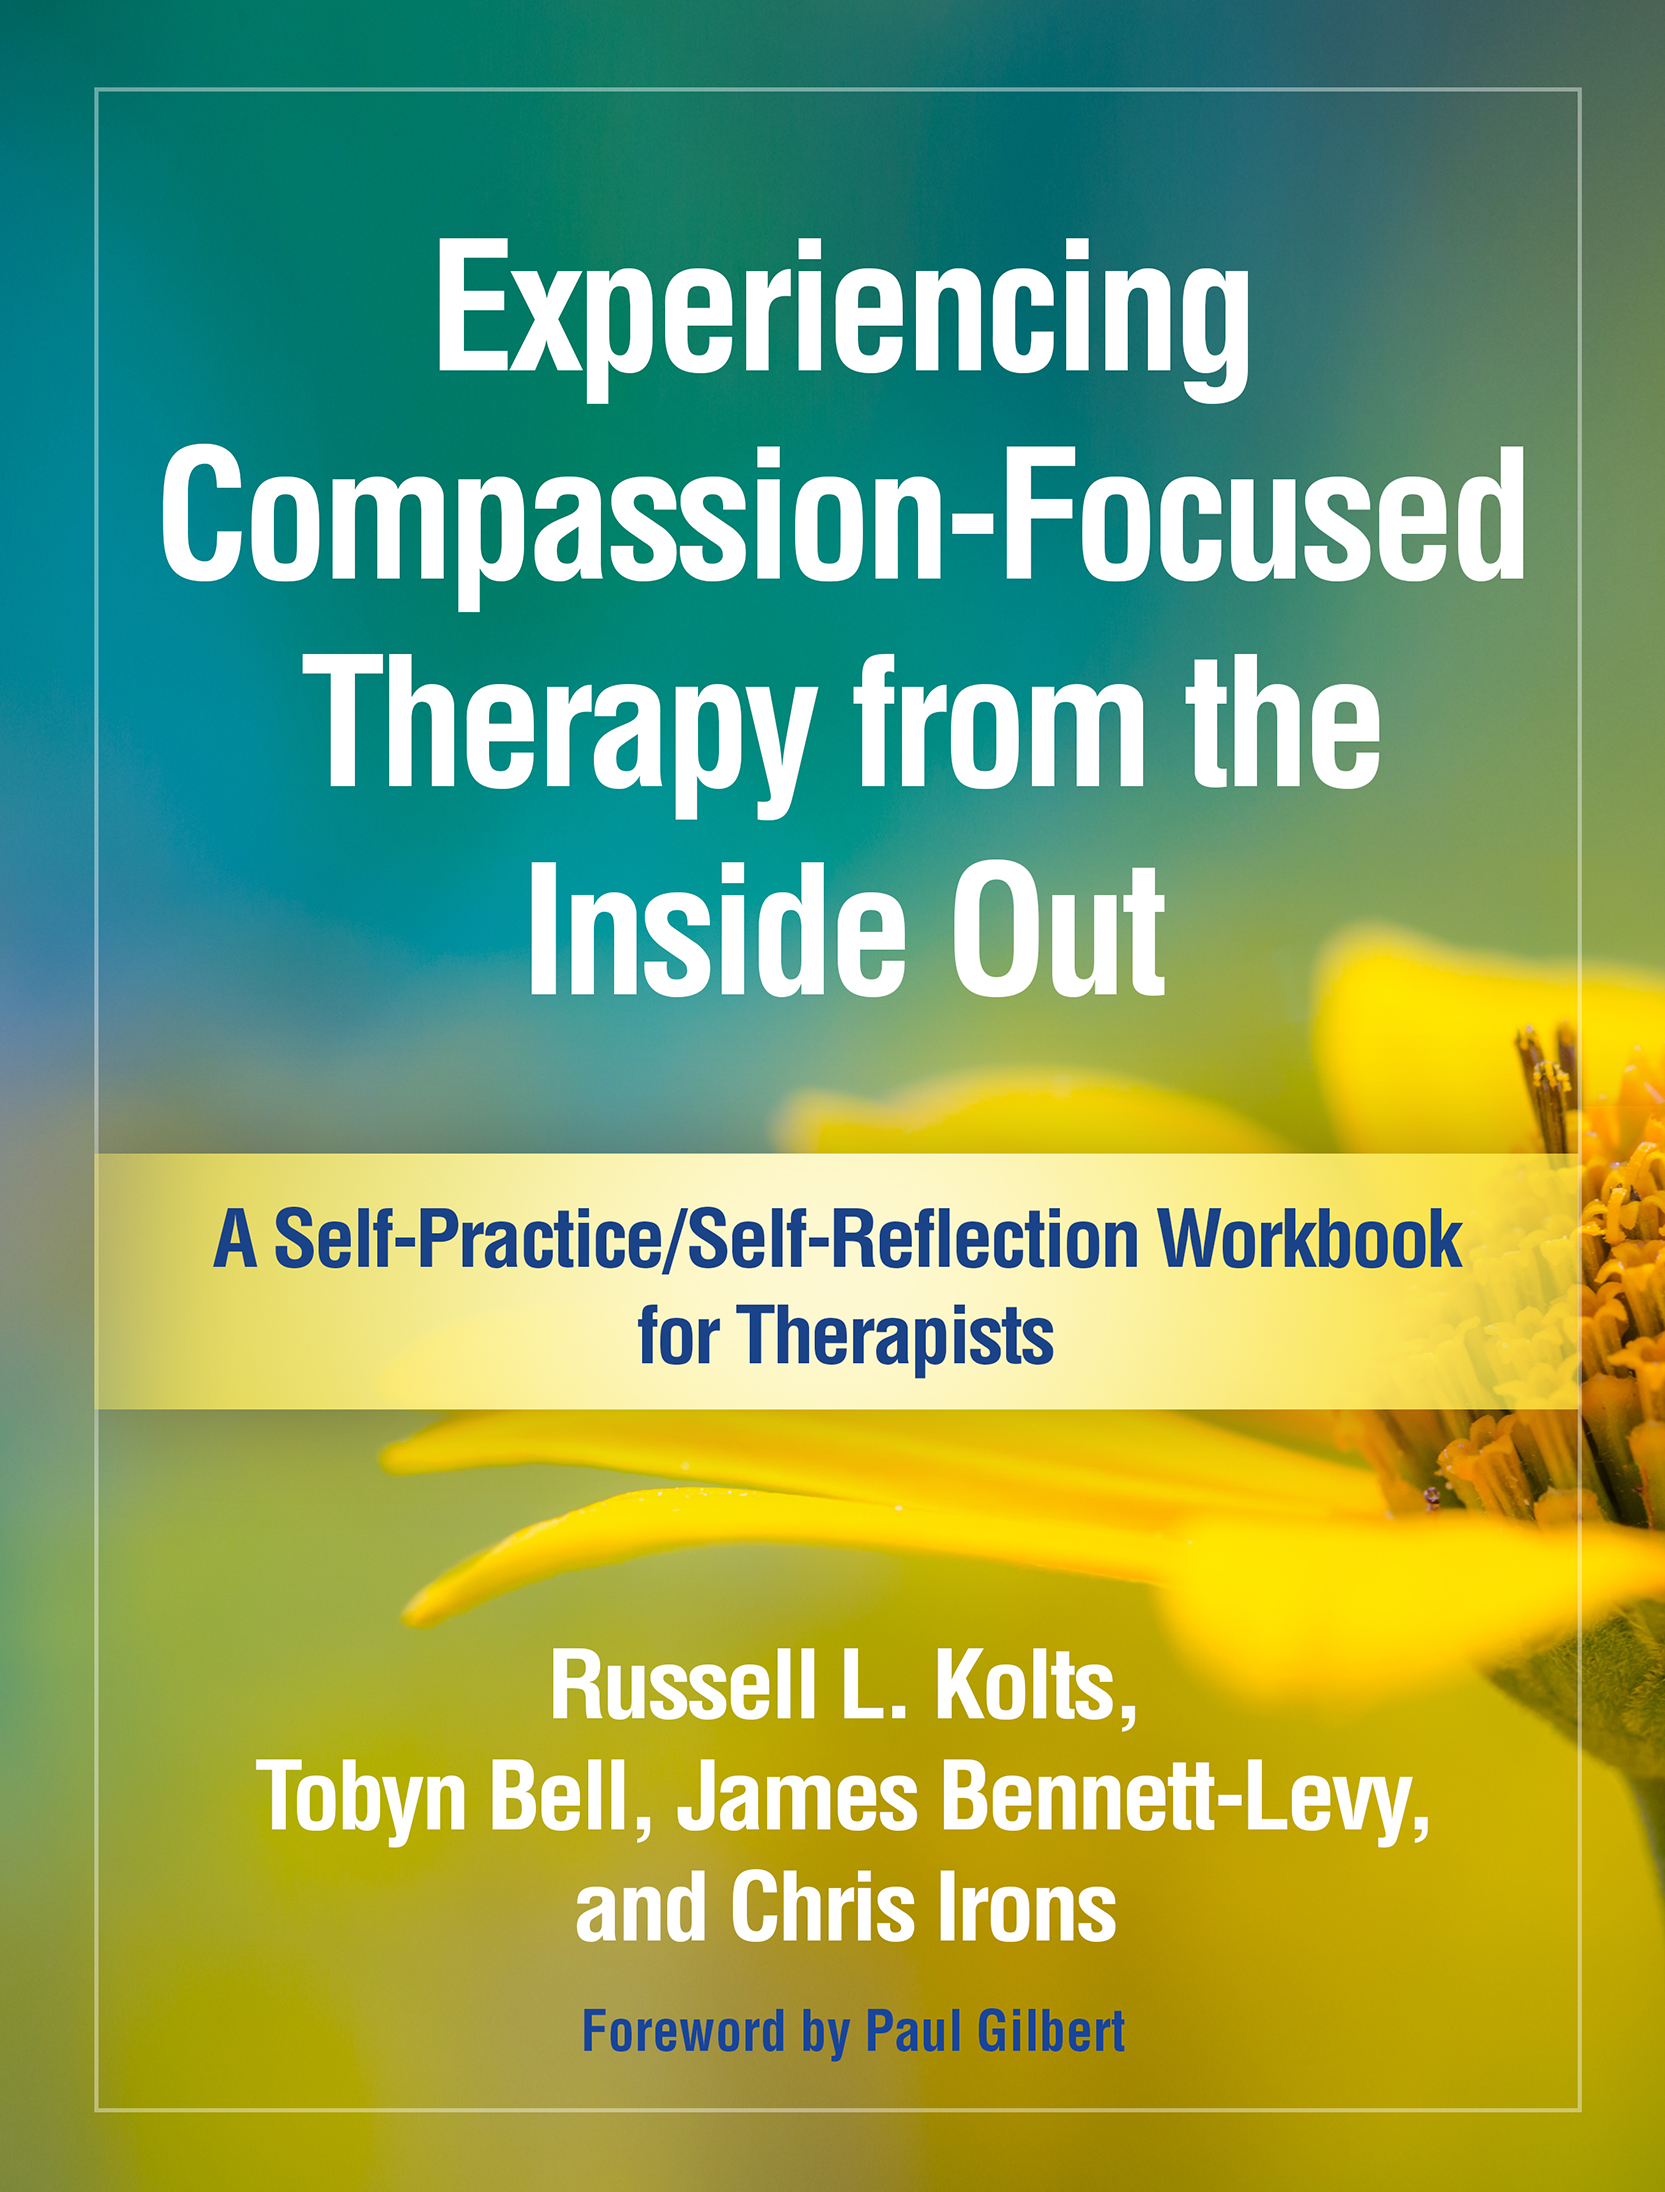 Experiencing Compassion-Focused Therapy from the Inside Out book cover